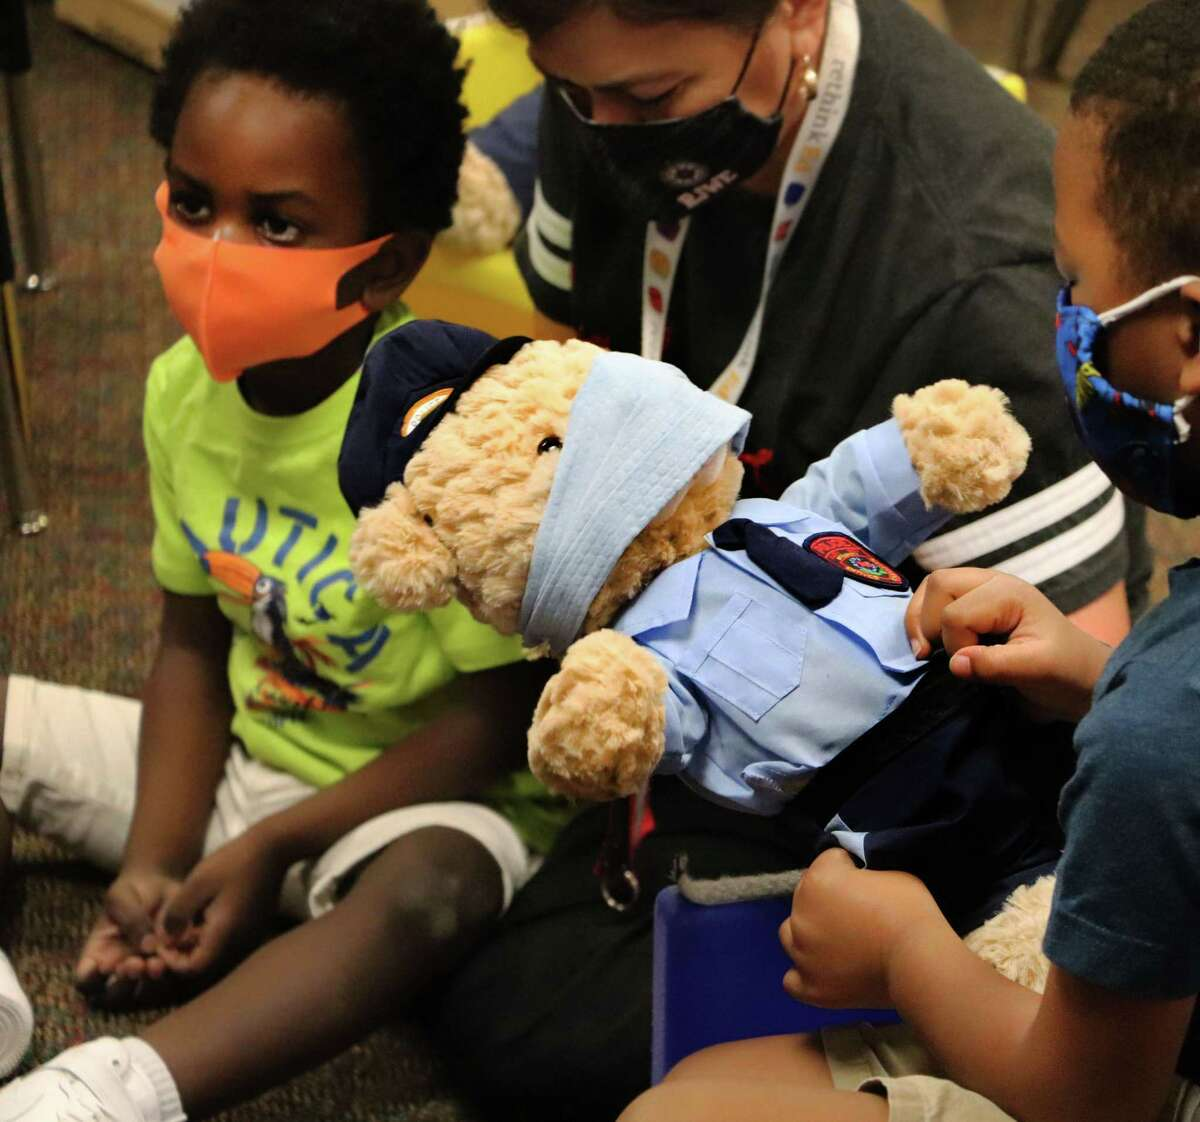 Young students receive teddy bears dressed like police officers as part of the Teddy Cops program at Wolman Elementary on Thursday, Oct. 8. The Katy Independent School District program started in 2015 and aims to teach special needs students that police officers are their friends.